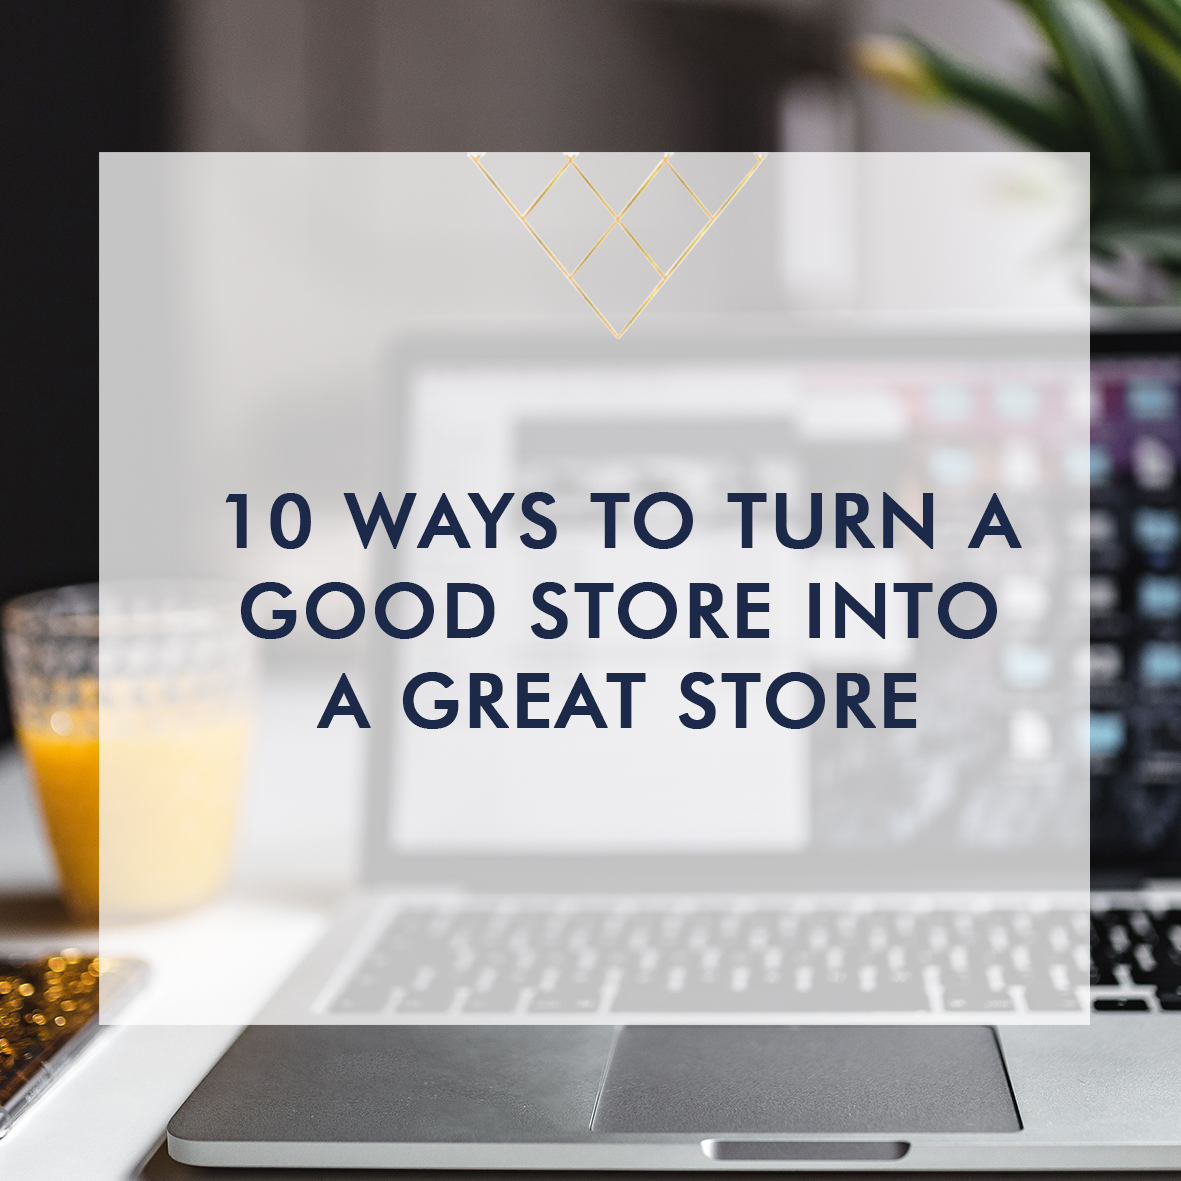 10 Ways To Turn A Good Store Into A Great Store